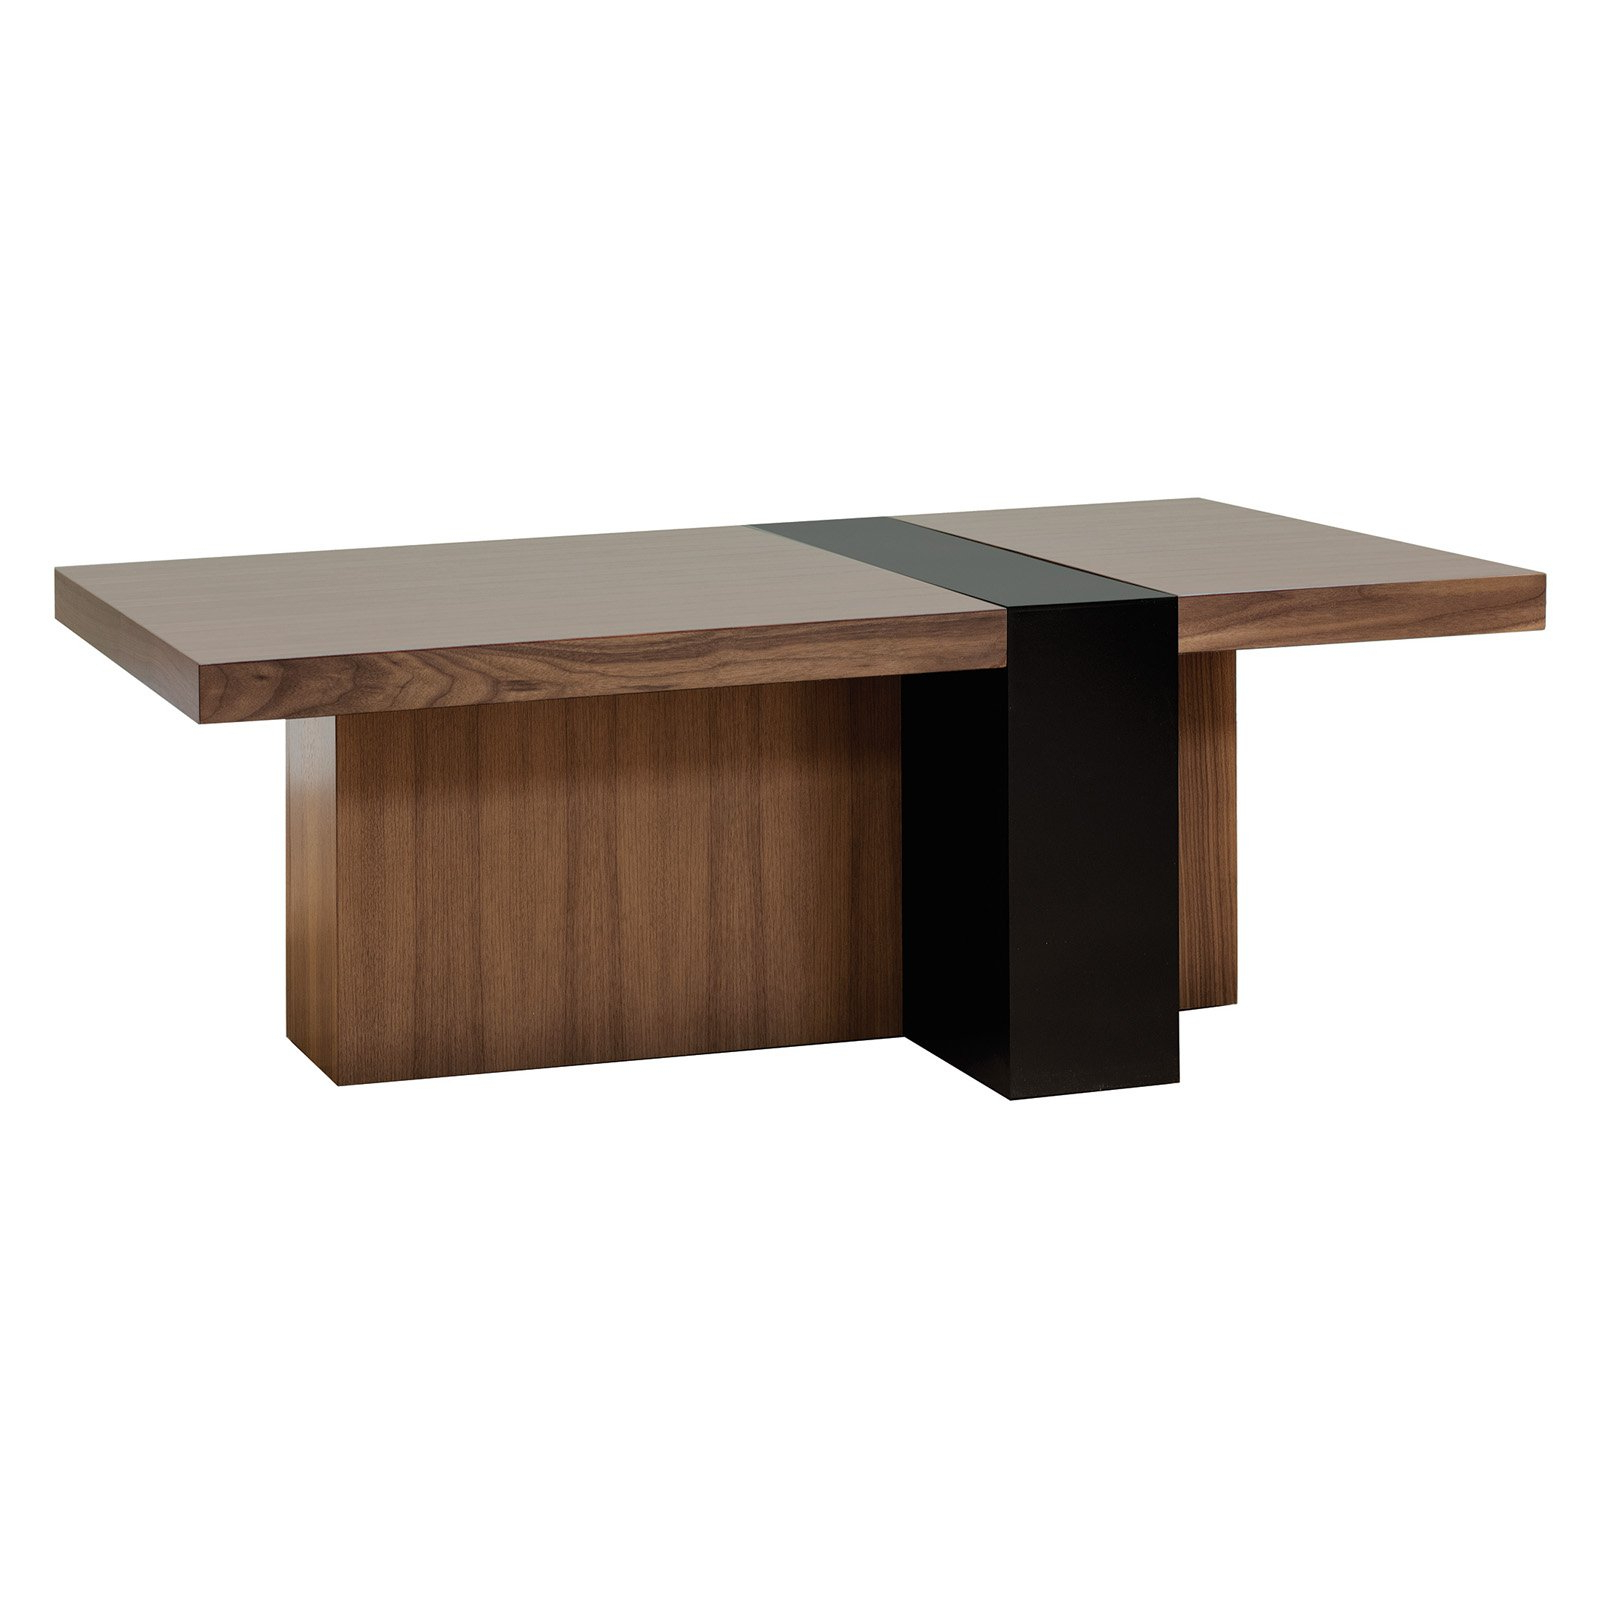 Famous Martin Furniture Stratus Coffee Table – Walmart For Stratus Cocktail Tables (View 7 of 20)